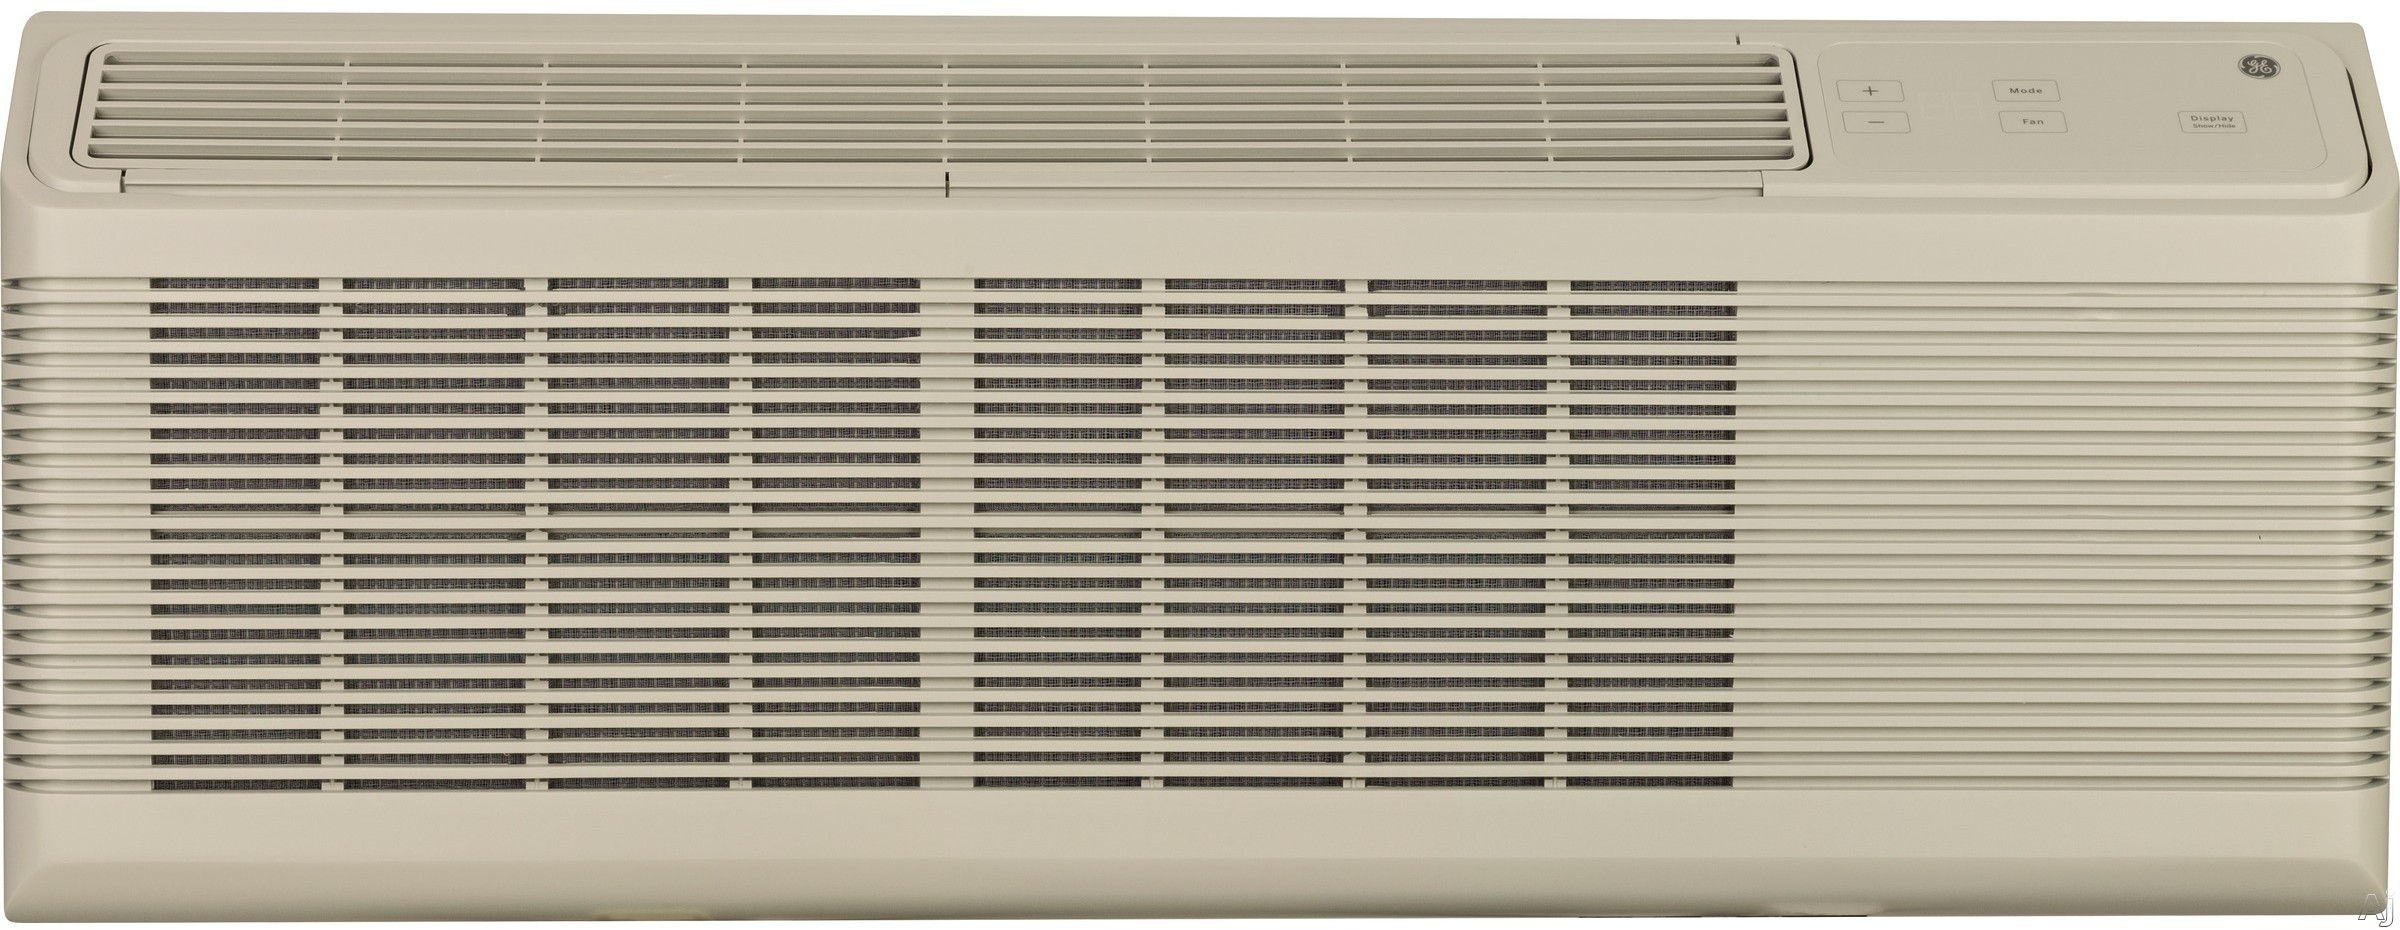 GE Zoneline AZ65H12DAB 12,100 BTU Room Air Conditioner with 10,500 BTU Heat Pump with Electric Heat Backup, 449 CFM, 11.9 EER, 3.7 Pts-Hr Dehumidification and 75 Fresh Air Vent CFM AZ65H12DAB